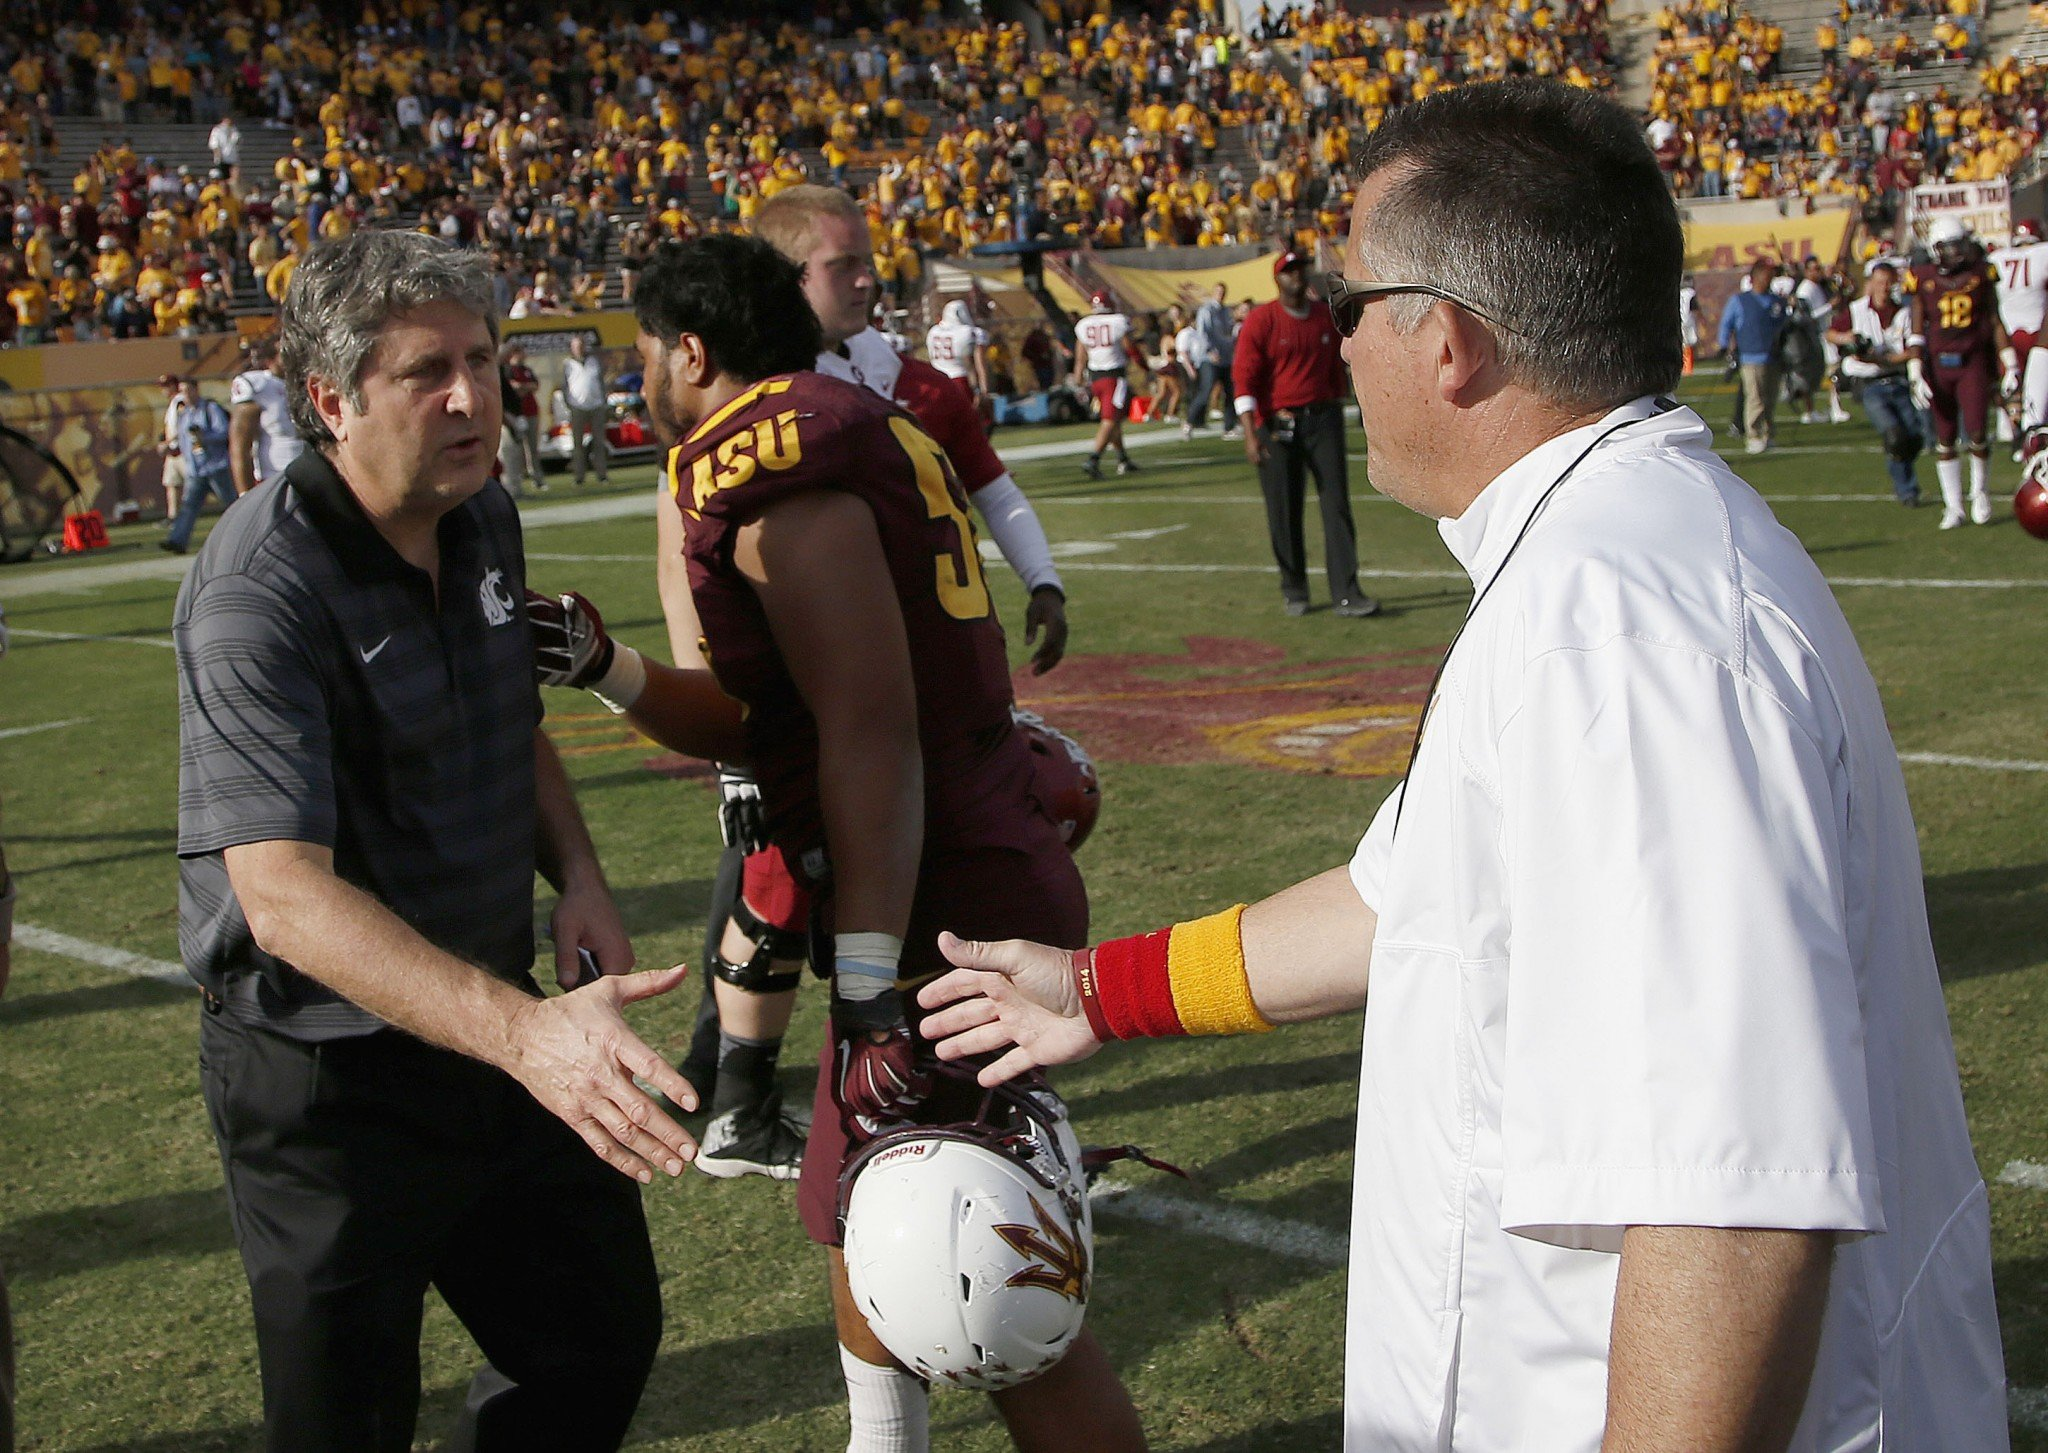 Things were a bit more cordial between Mike Leach and Todd Graham back in 2014, when this photo was taken. (AP Photo/Ross D. Franklin)